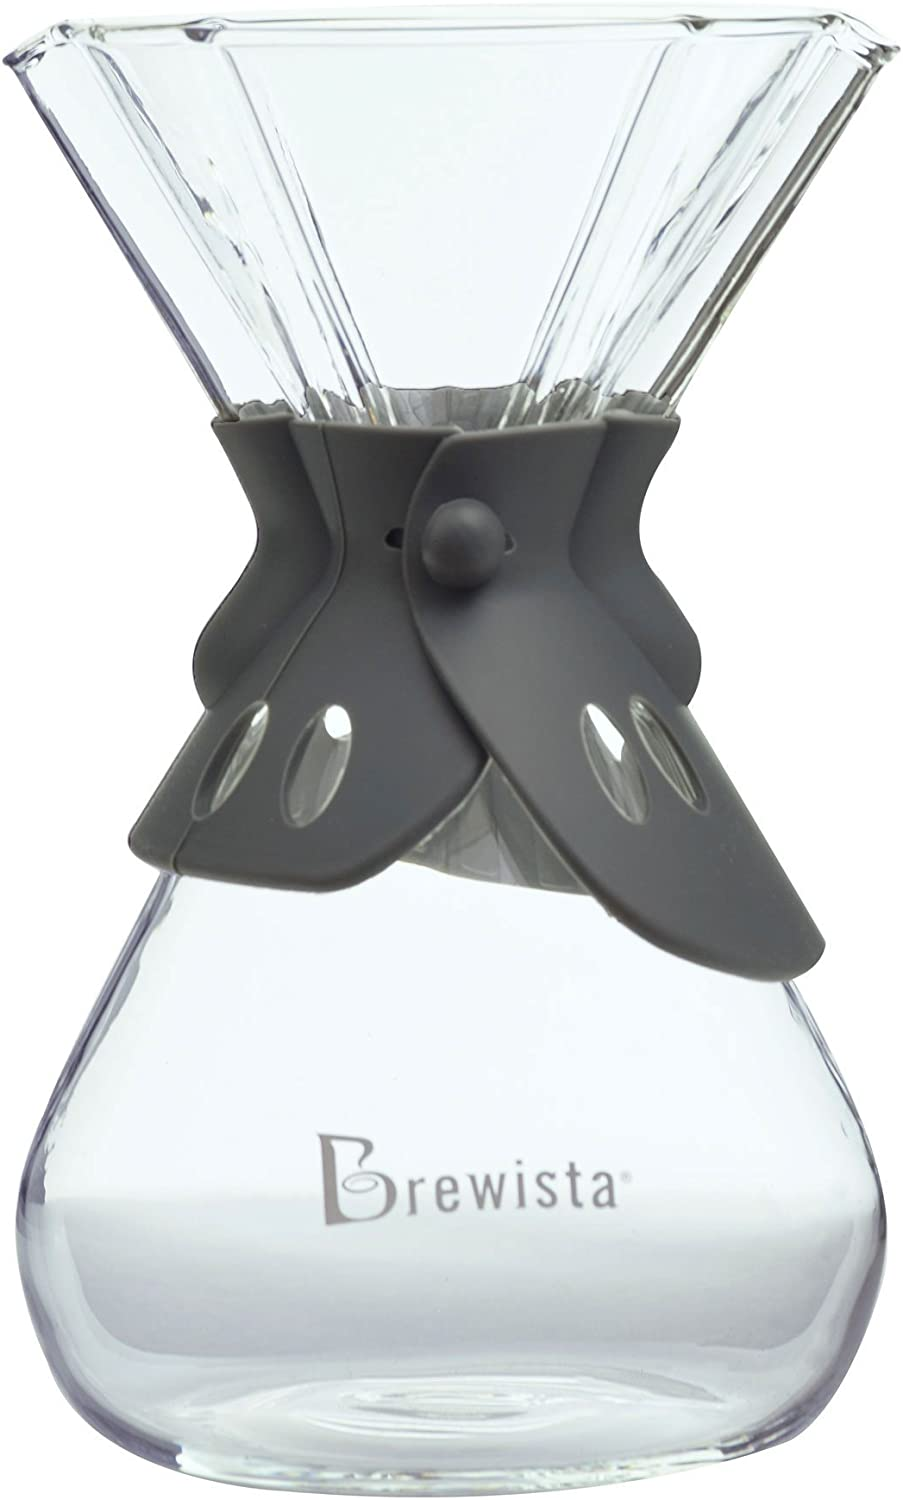 Brewista BRWHG8C Smart Brew 8 Hourglass Clear Cup Sale SALE% OFF Brewer Lowest price challenge